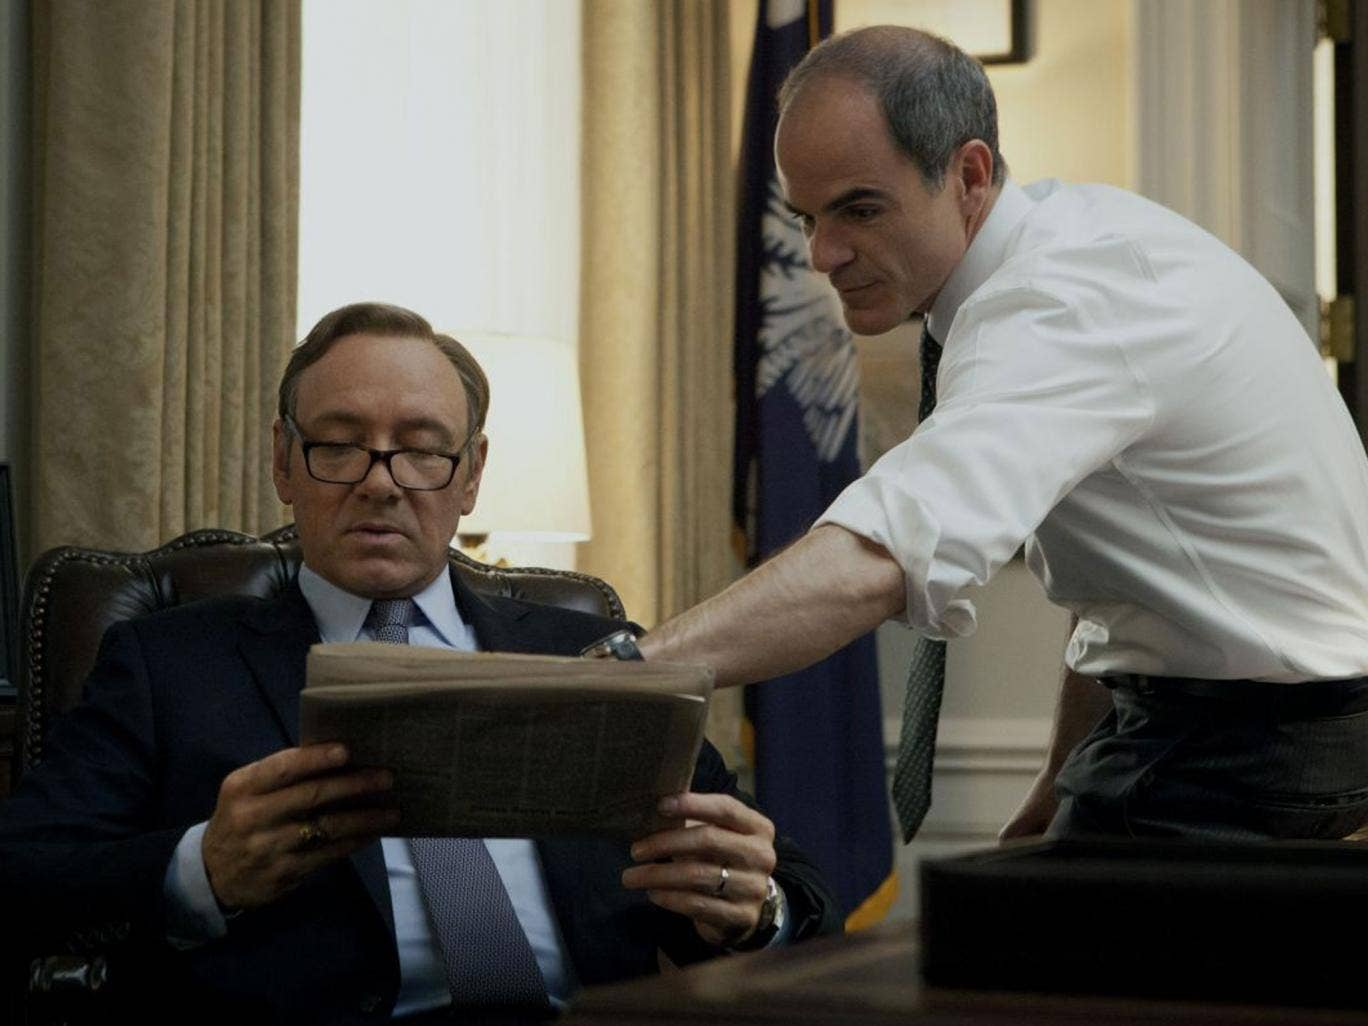 Kevin Spacey (left) in House of Cards